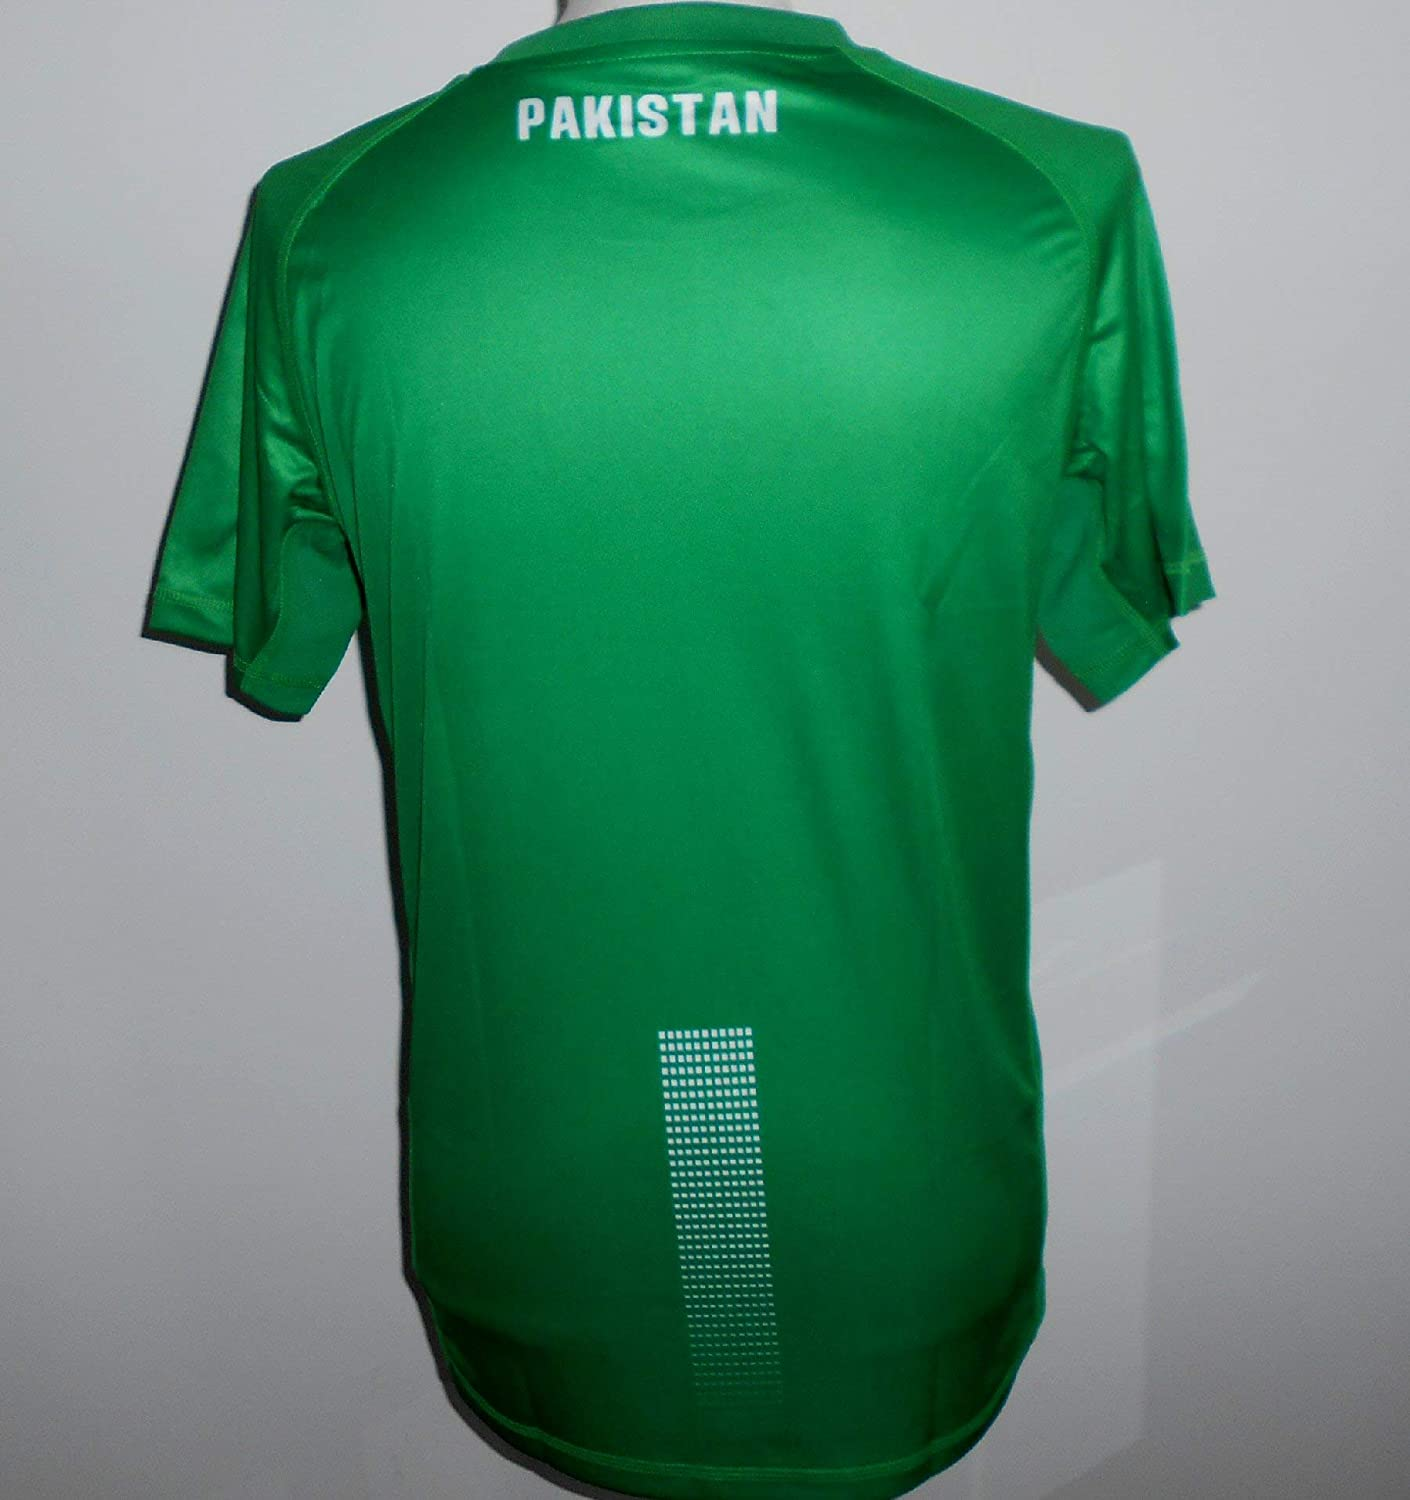 dbb3b2452a4 JOSHILA Pakistan Official Men's Home Football Shirt 2018-2019: Amazon.co.uk:  Sports & Outdoors